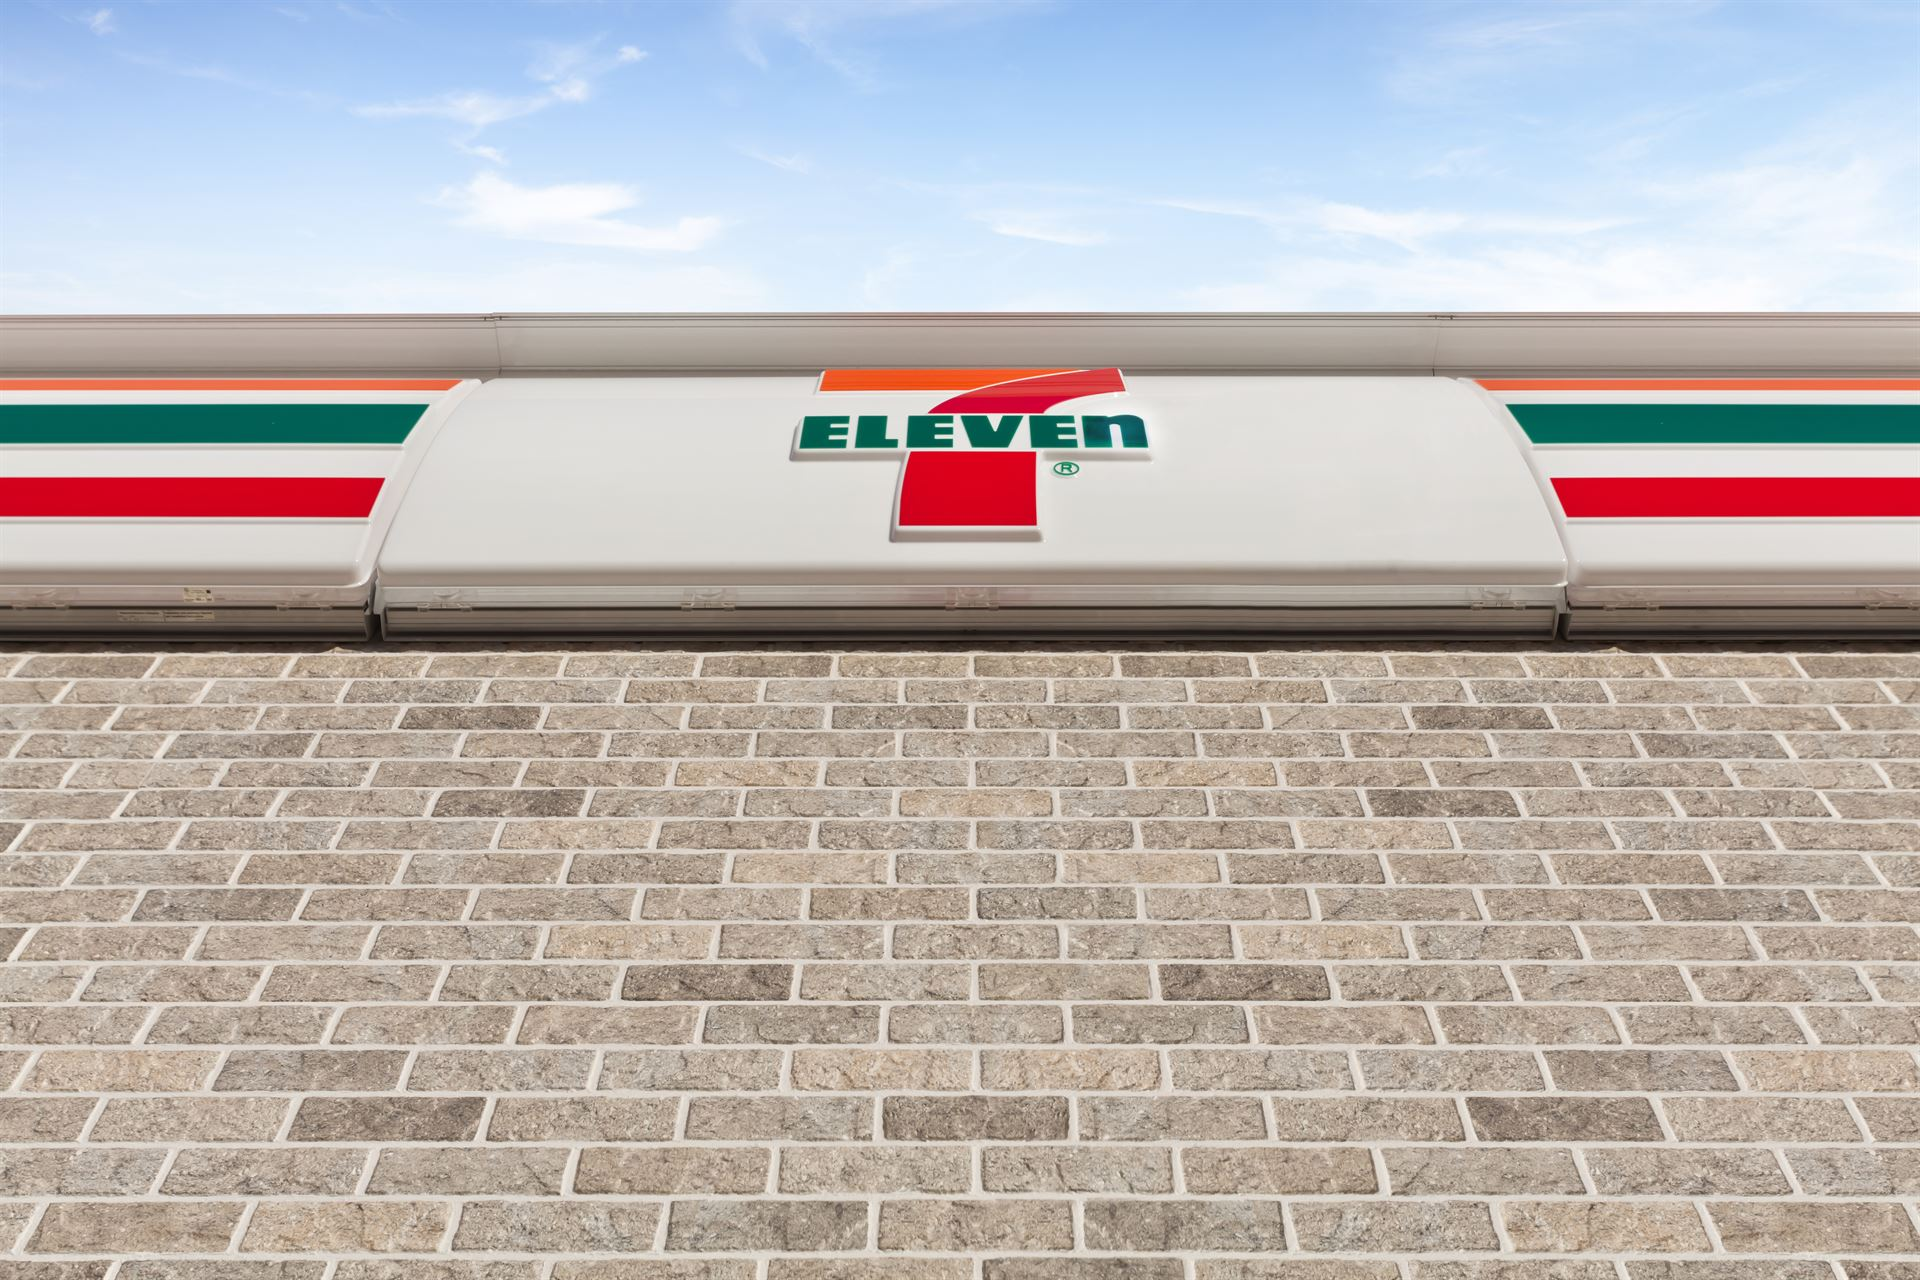 Exterior of 7-11 store featuring CanyonBrick